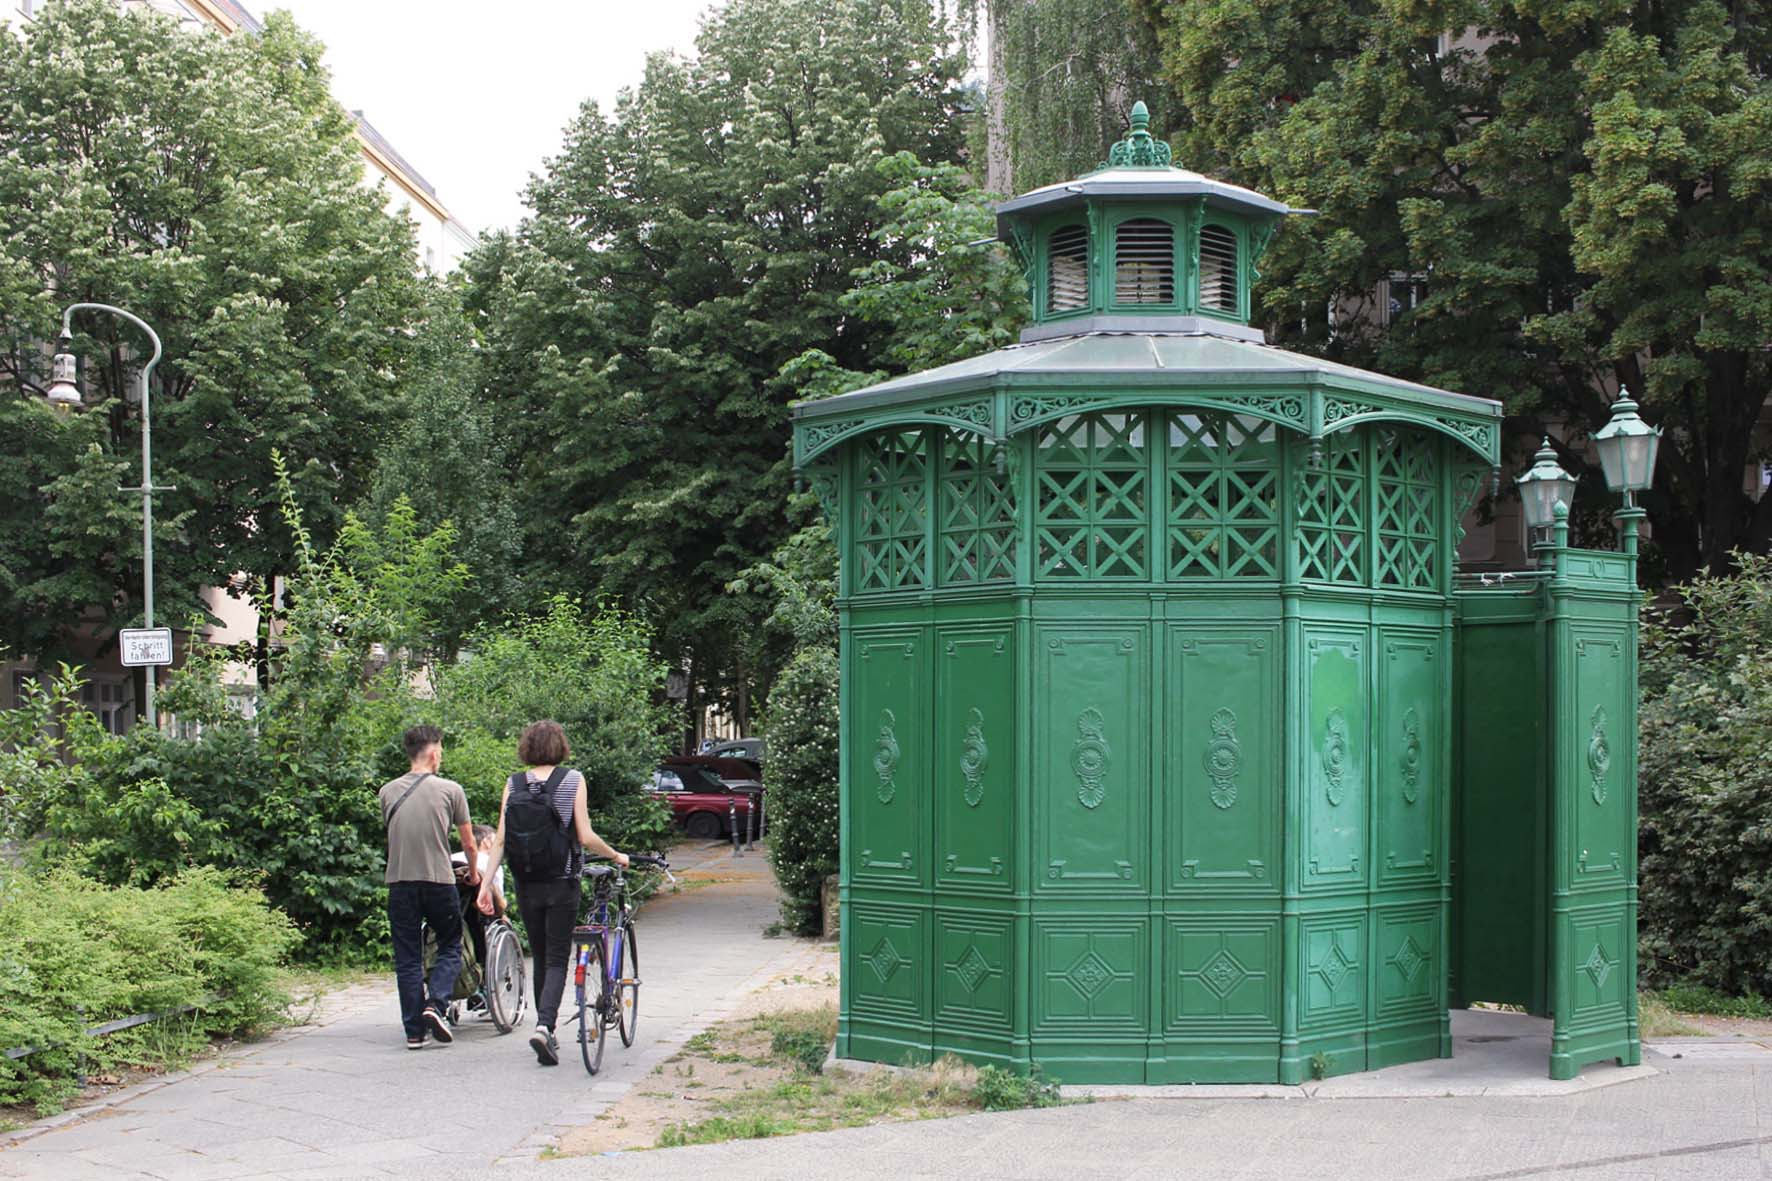 Café Achteck - Unionplatz - an example of Berlin's classic 19th century green cast iron public toilets